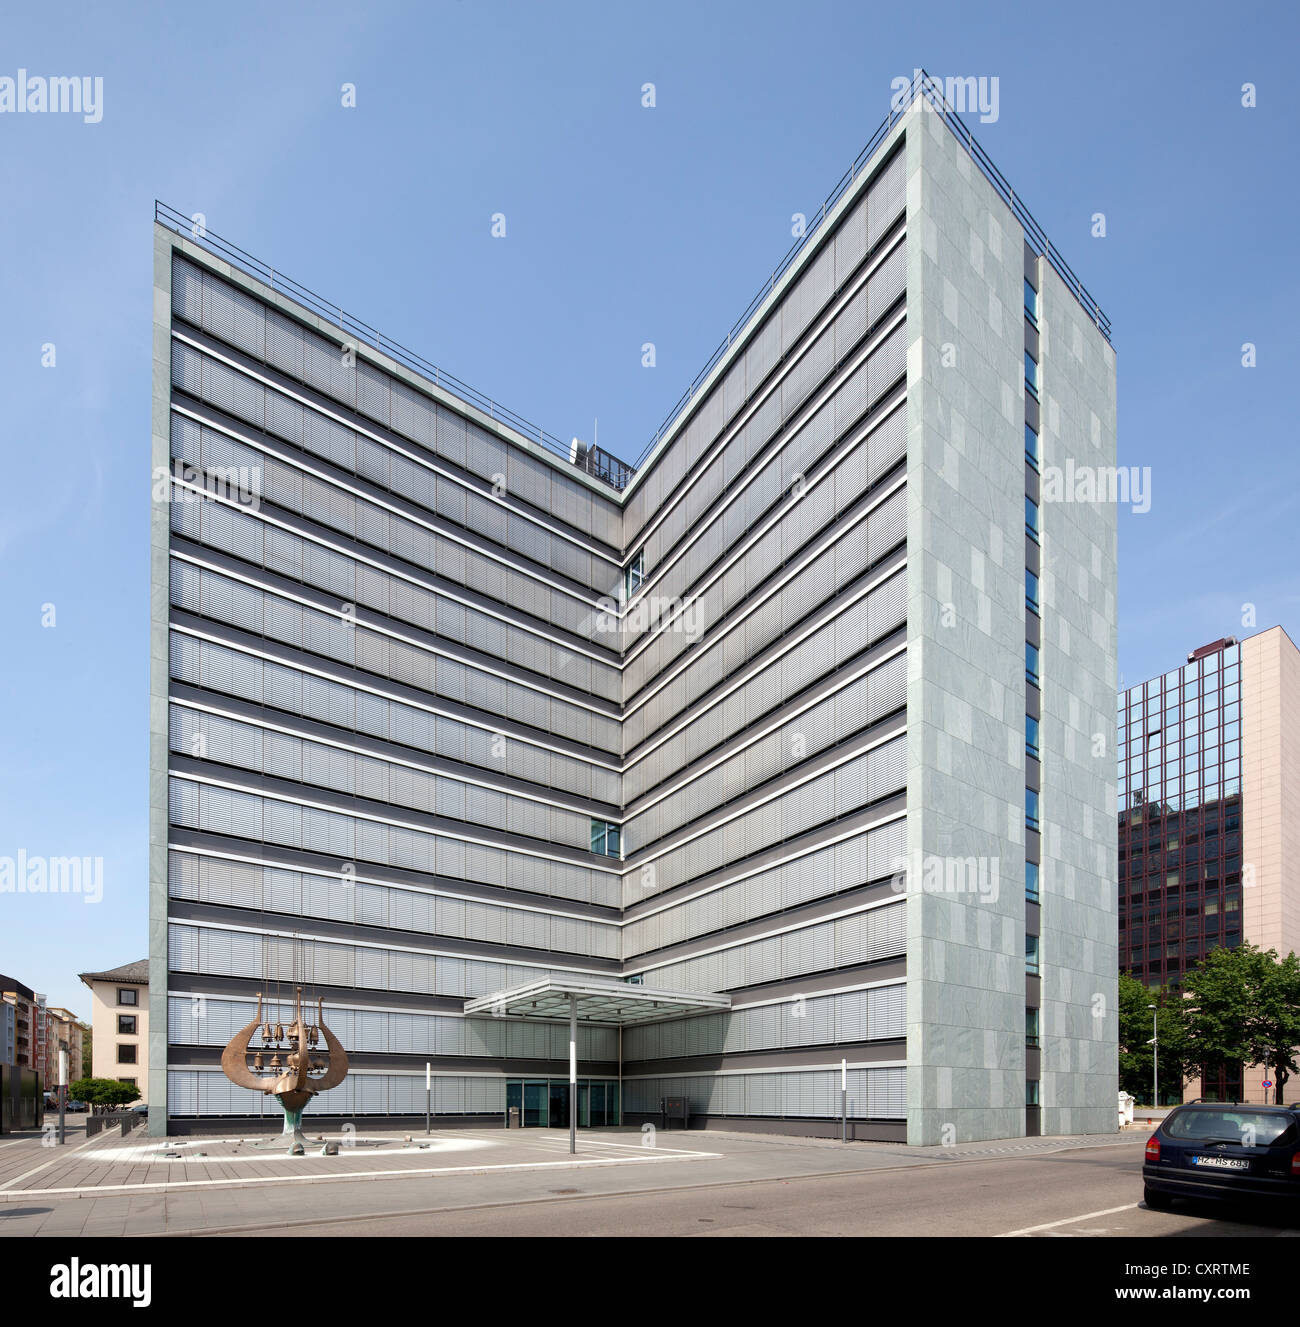 Ministerial office building of Rhineland-Palatinate, Mainz, Rhineland-Palatinate, Germany, Europe, PublicGround - Stock Image